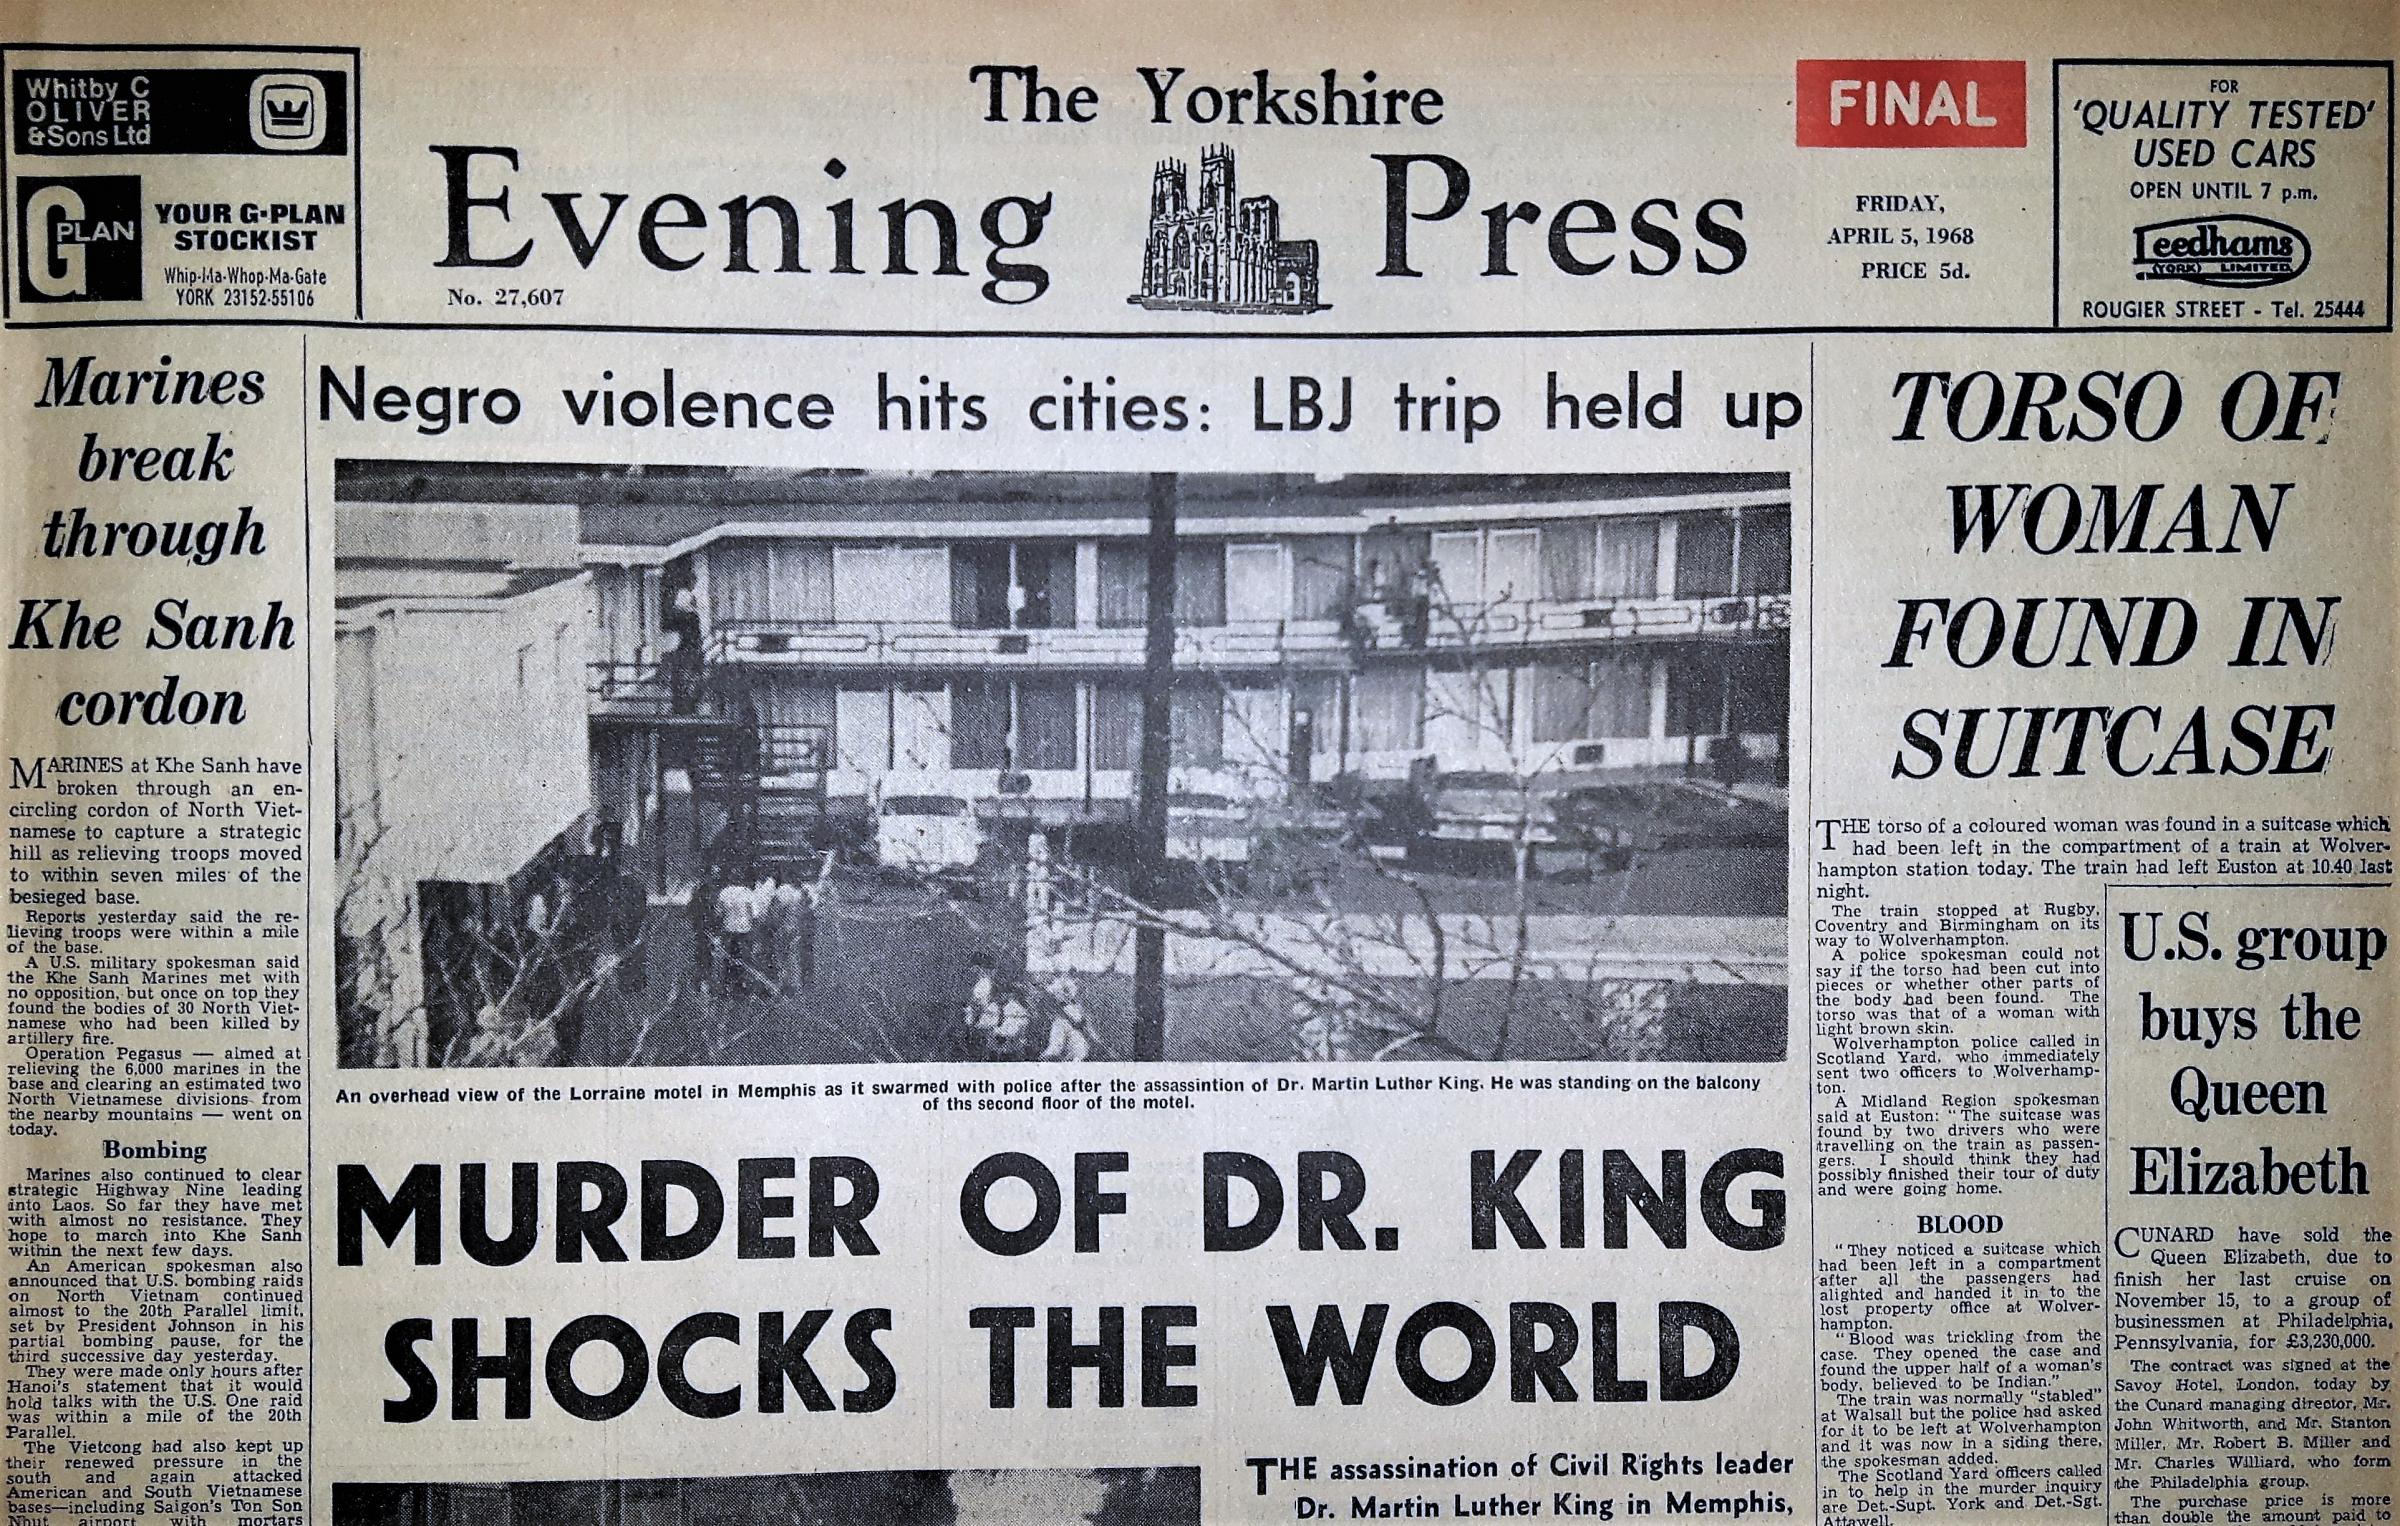 ON THIS DAY: April 5 | York Press - The Press, York 1